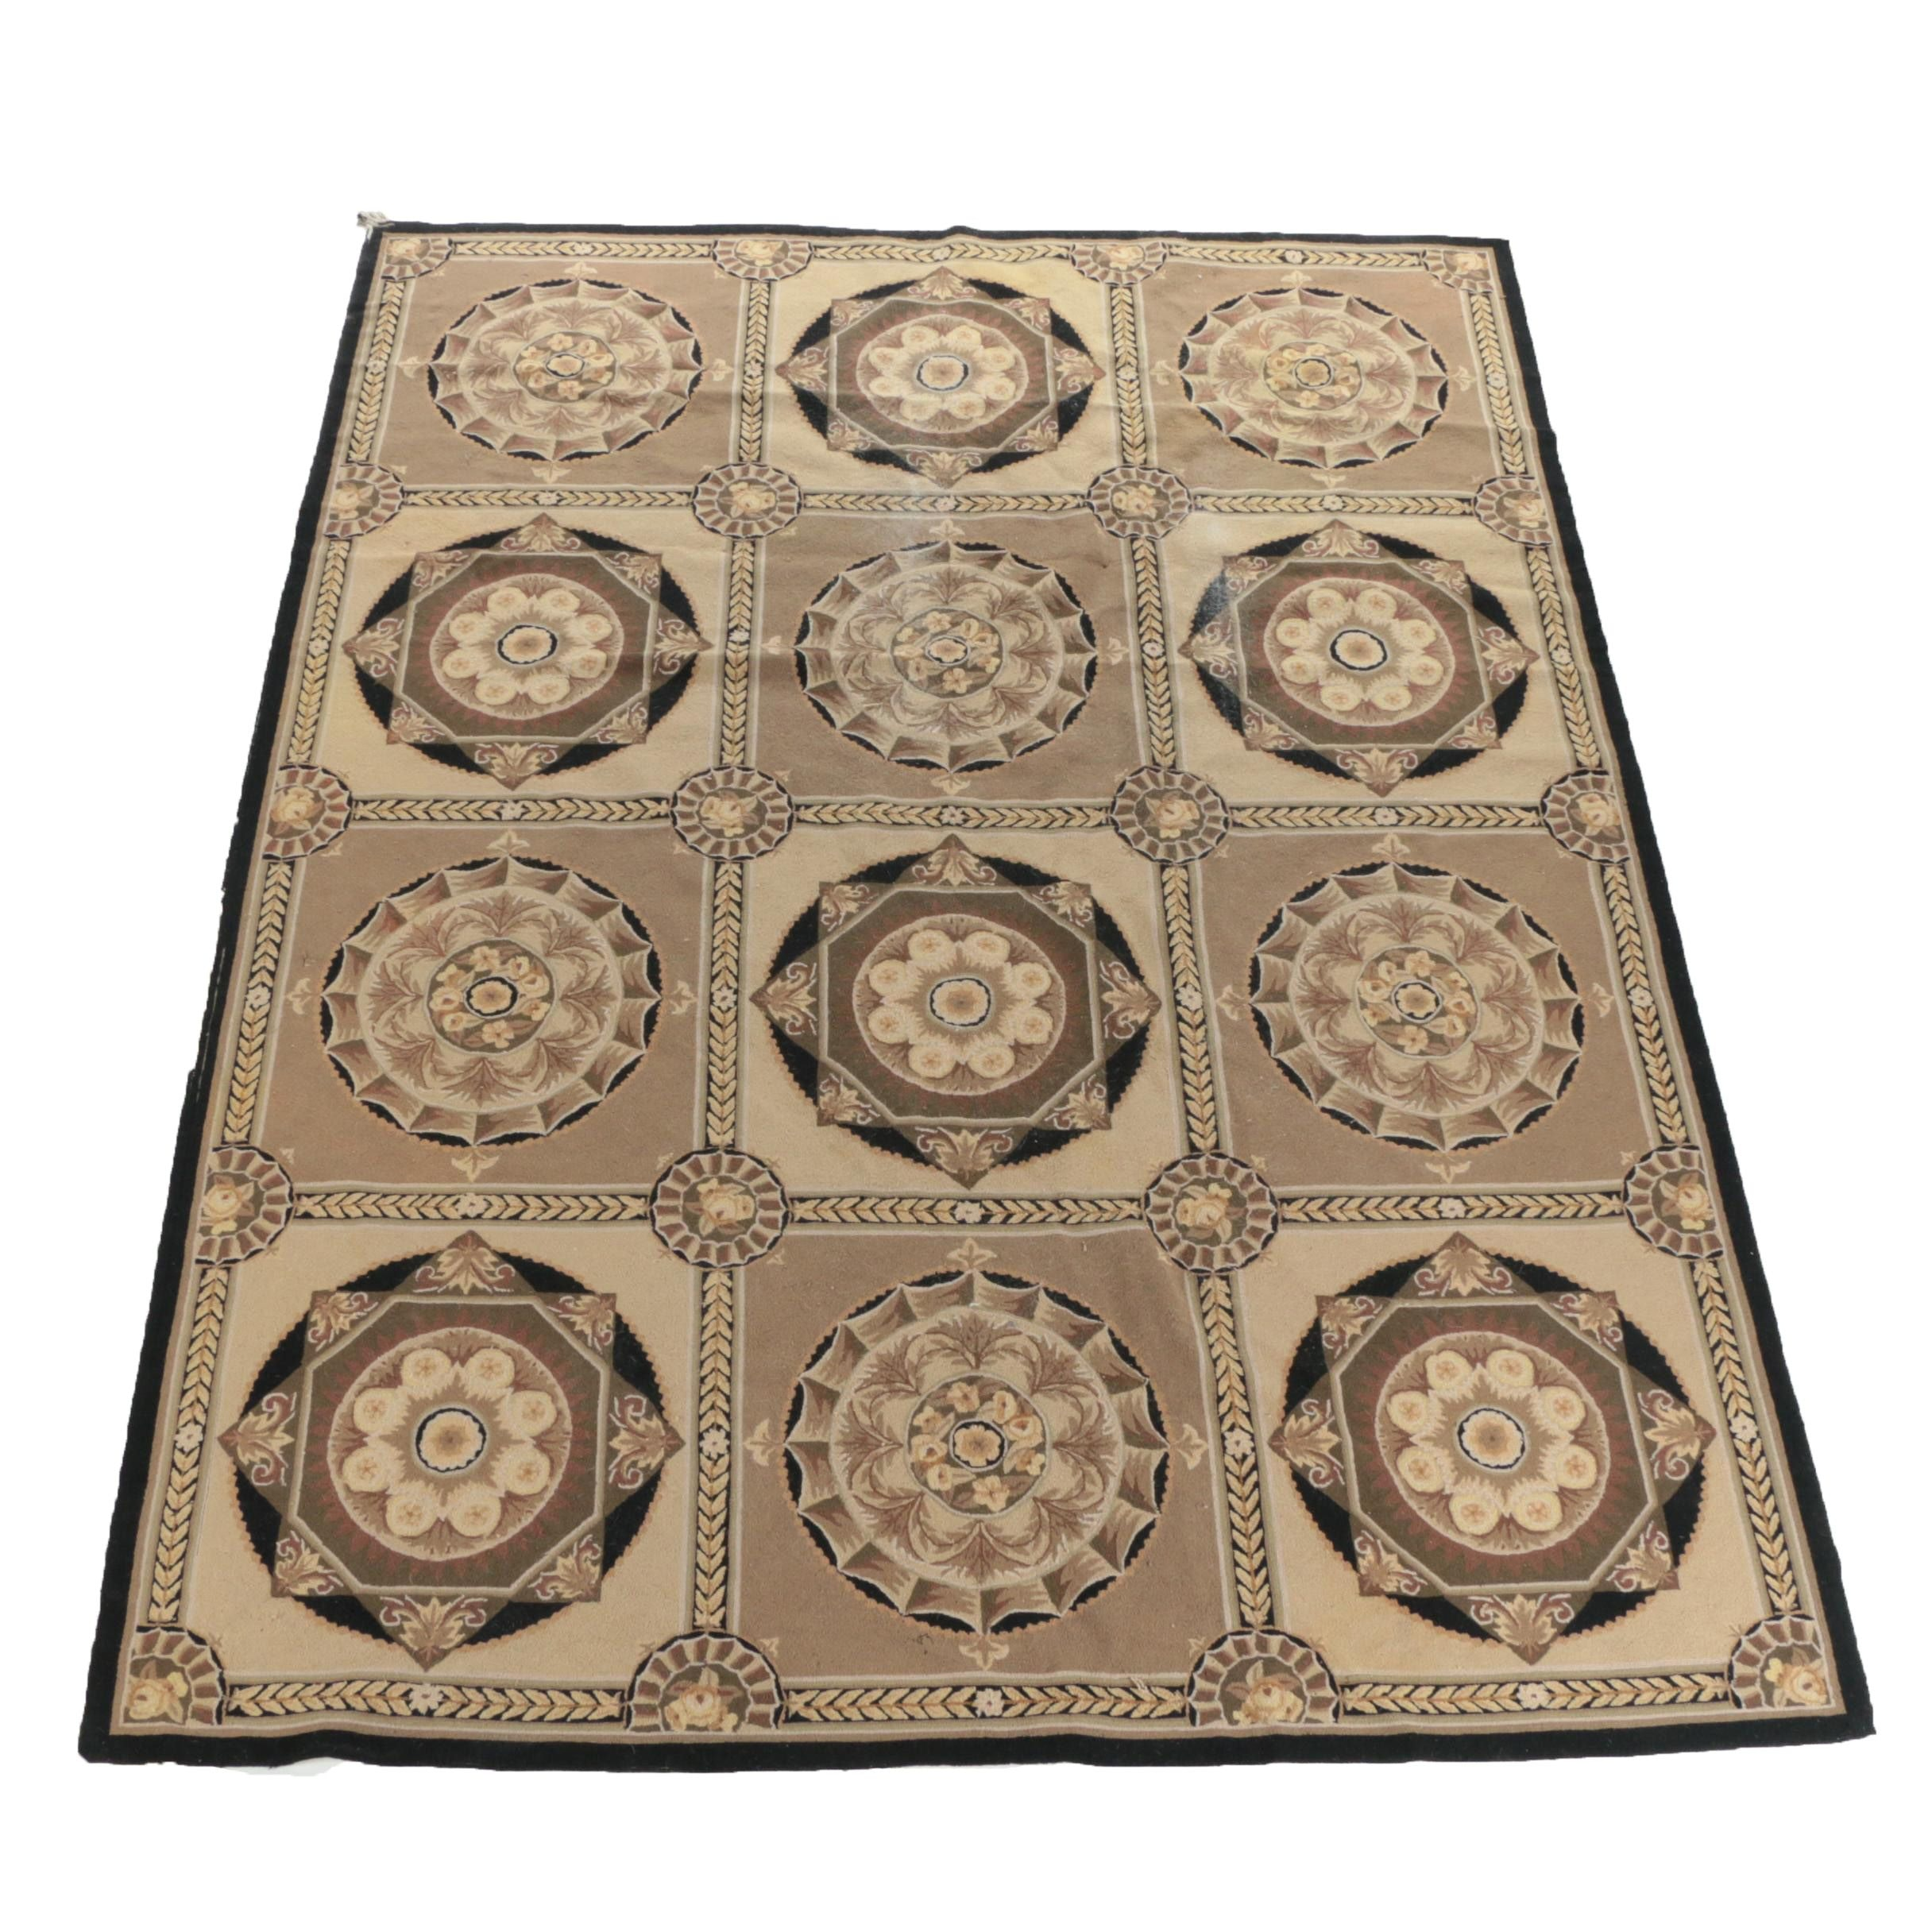 Hand-Tufted Chinese Wool Area Rug